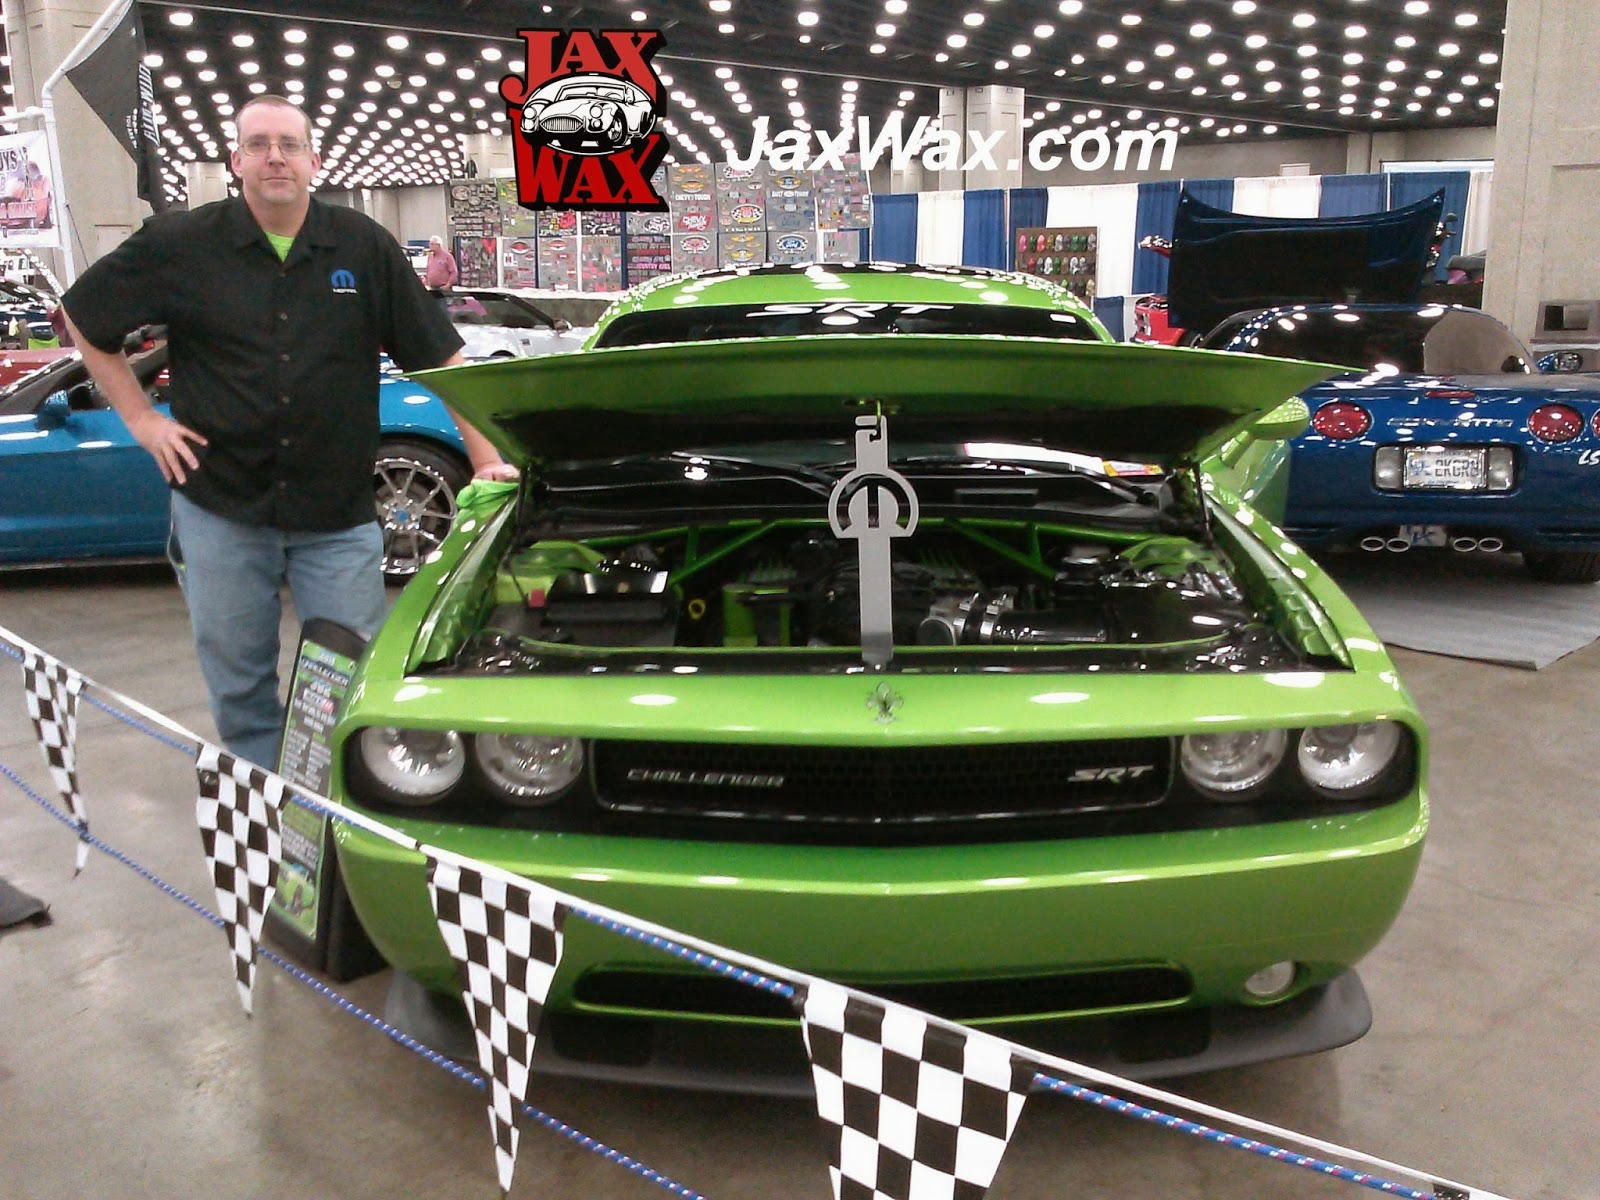 2011 Dodge Challenger Carl Casper Auto Show Jax Wax Customer